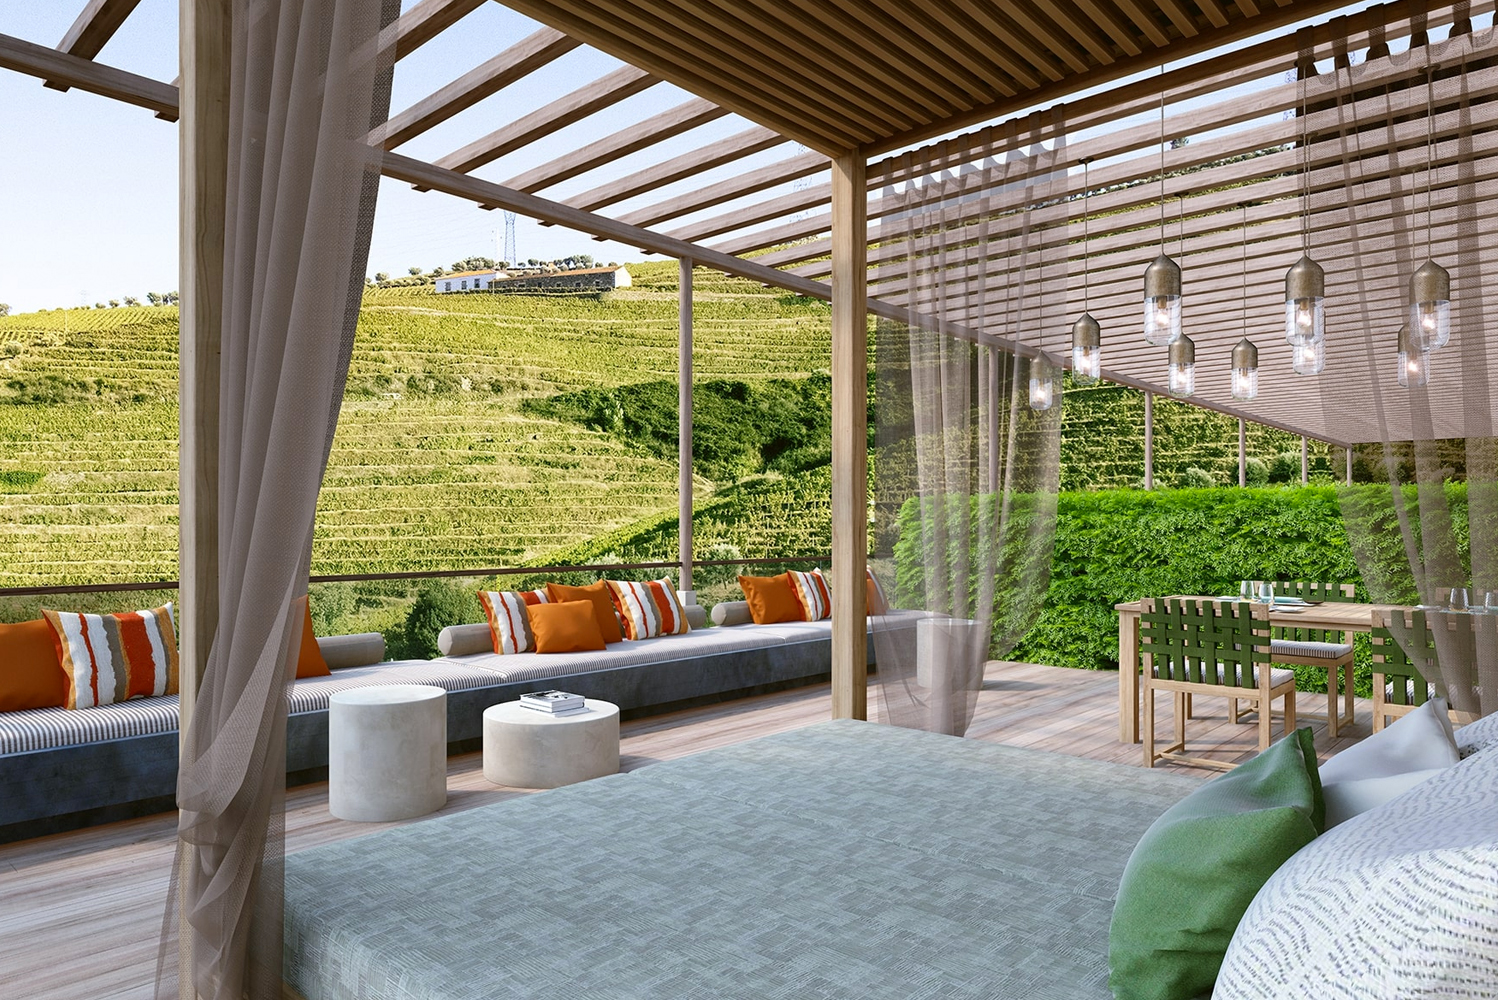 Work is in progress to add seven suites and three guestrooms at Six Senses Douro Valley, set to debut this summer.